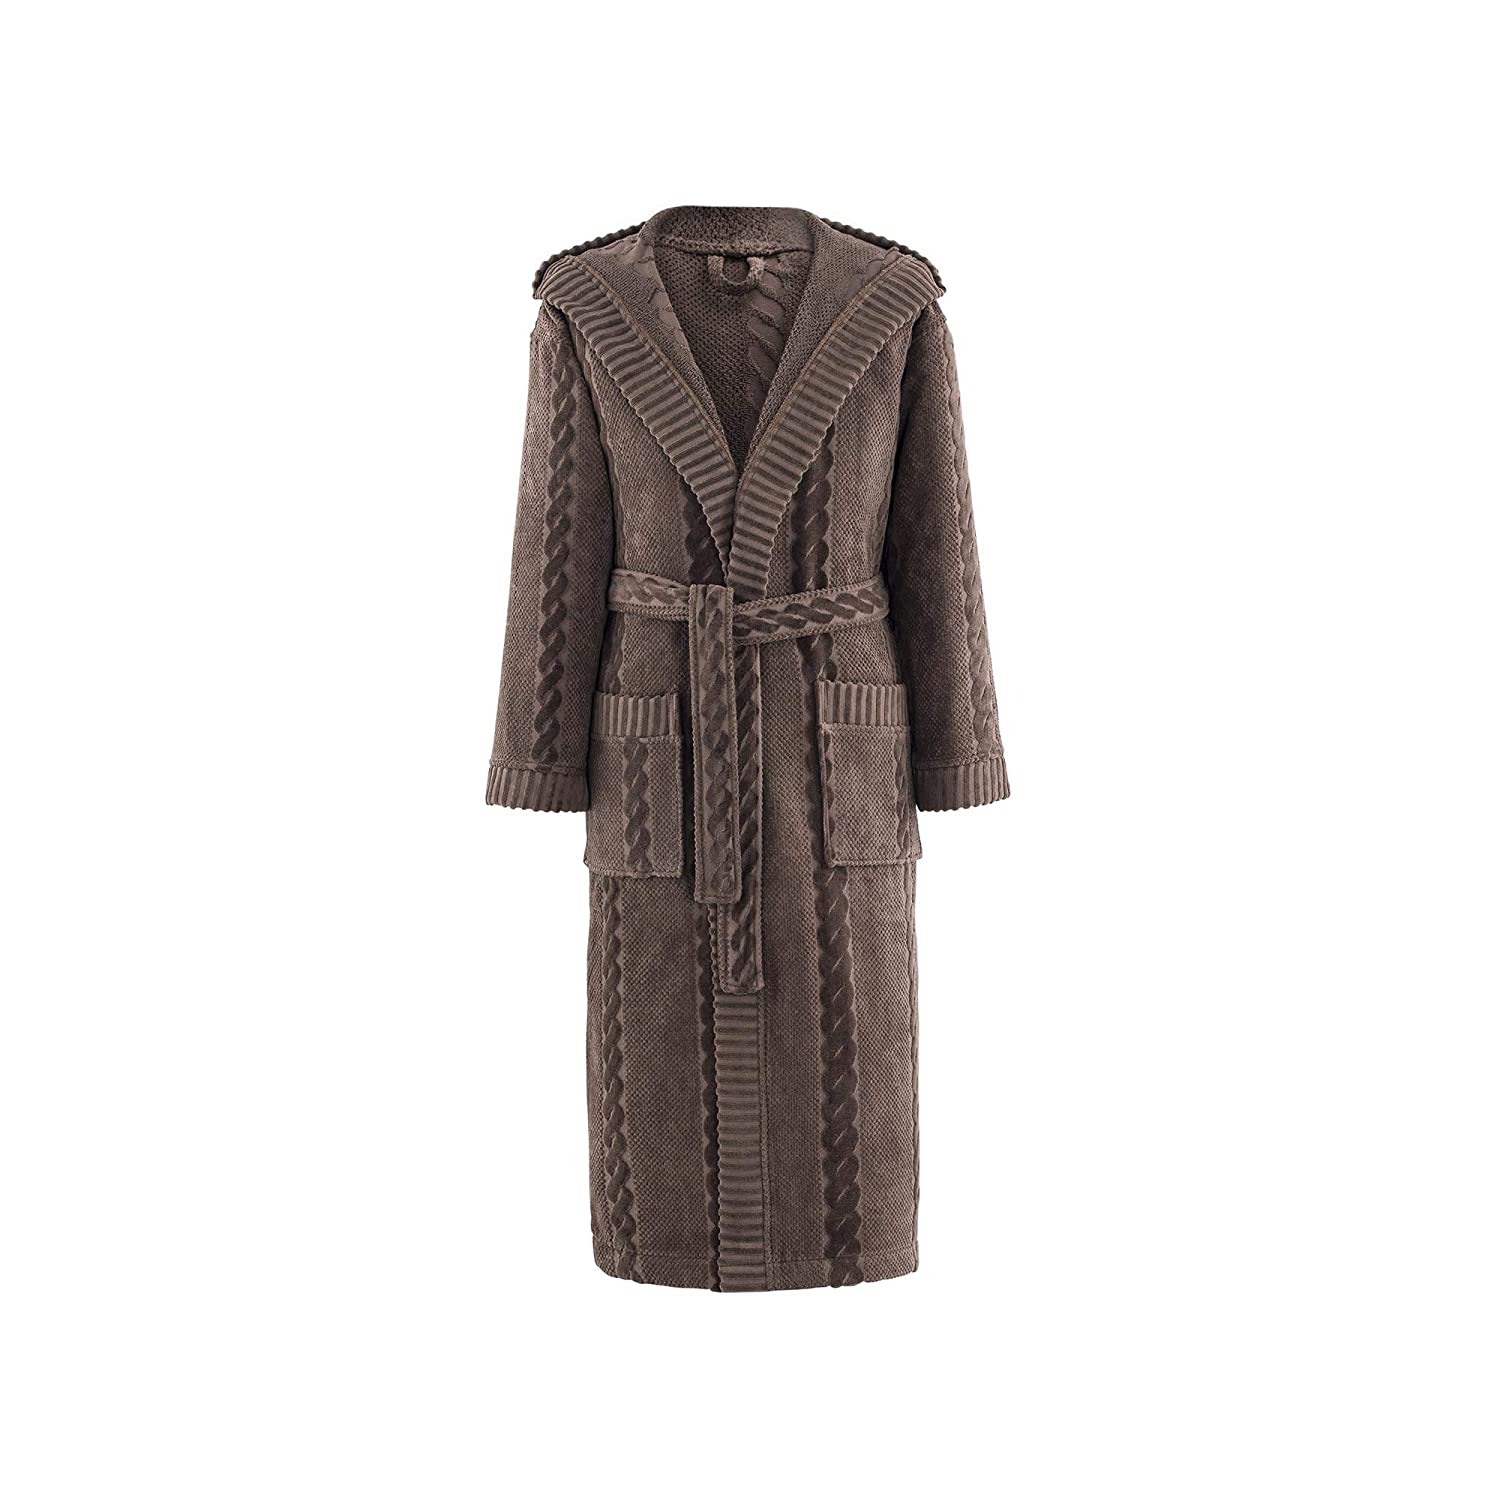 Togas Edmond BN Hooded Bathrobe 1 Items 450 100/% Cotton Brown